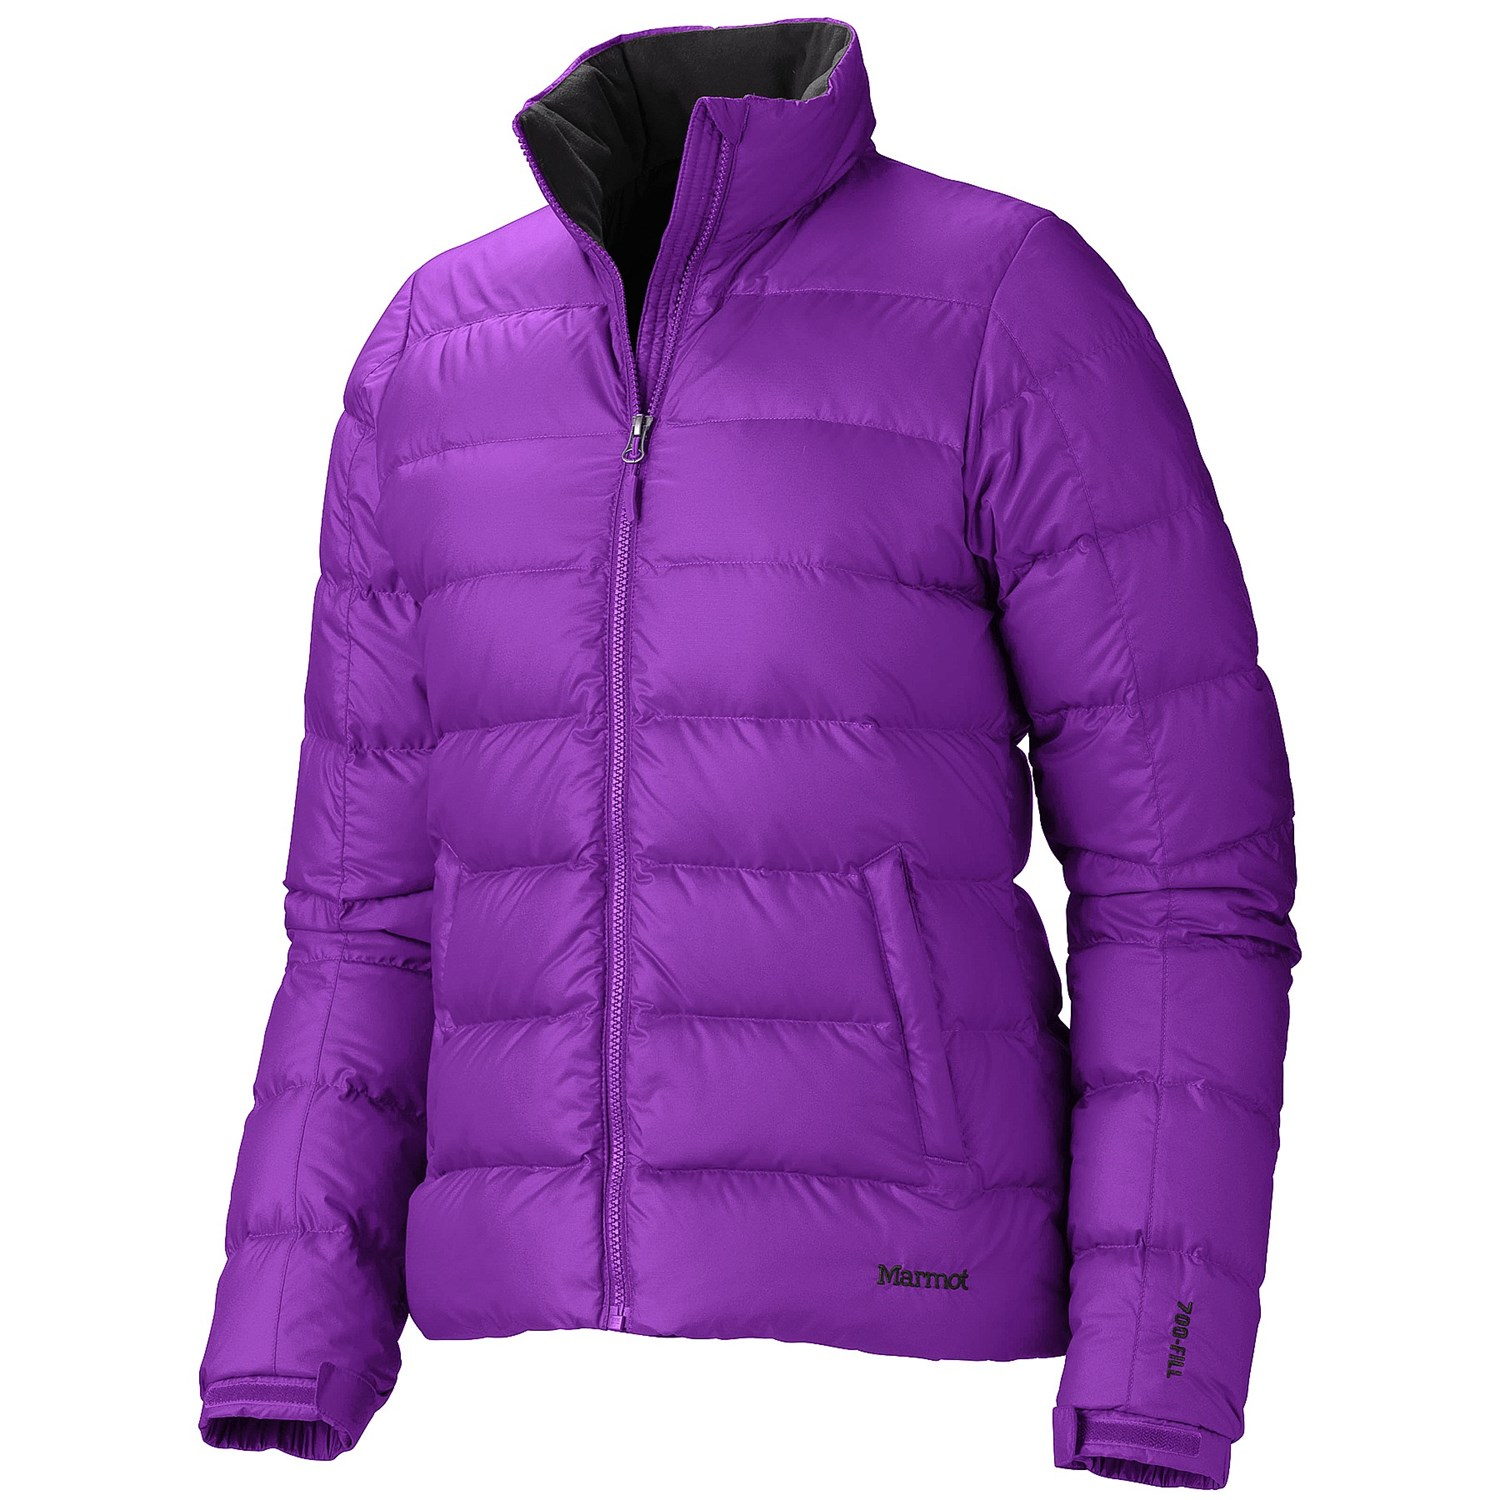 Highland Down Jacket - 700 Fill Power (For Women)